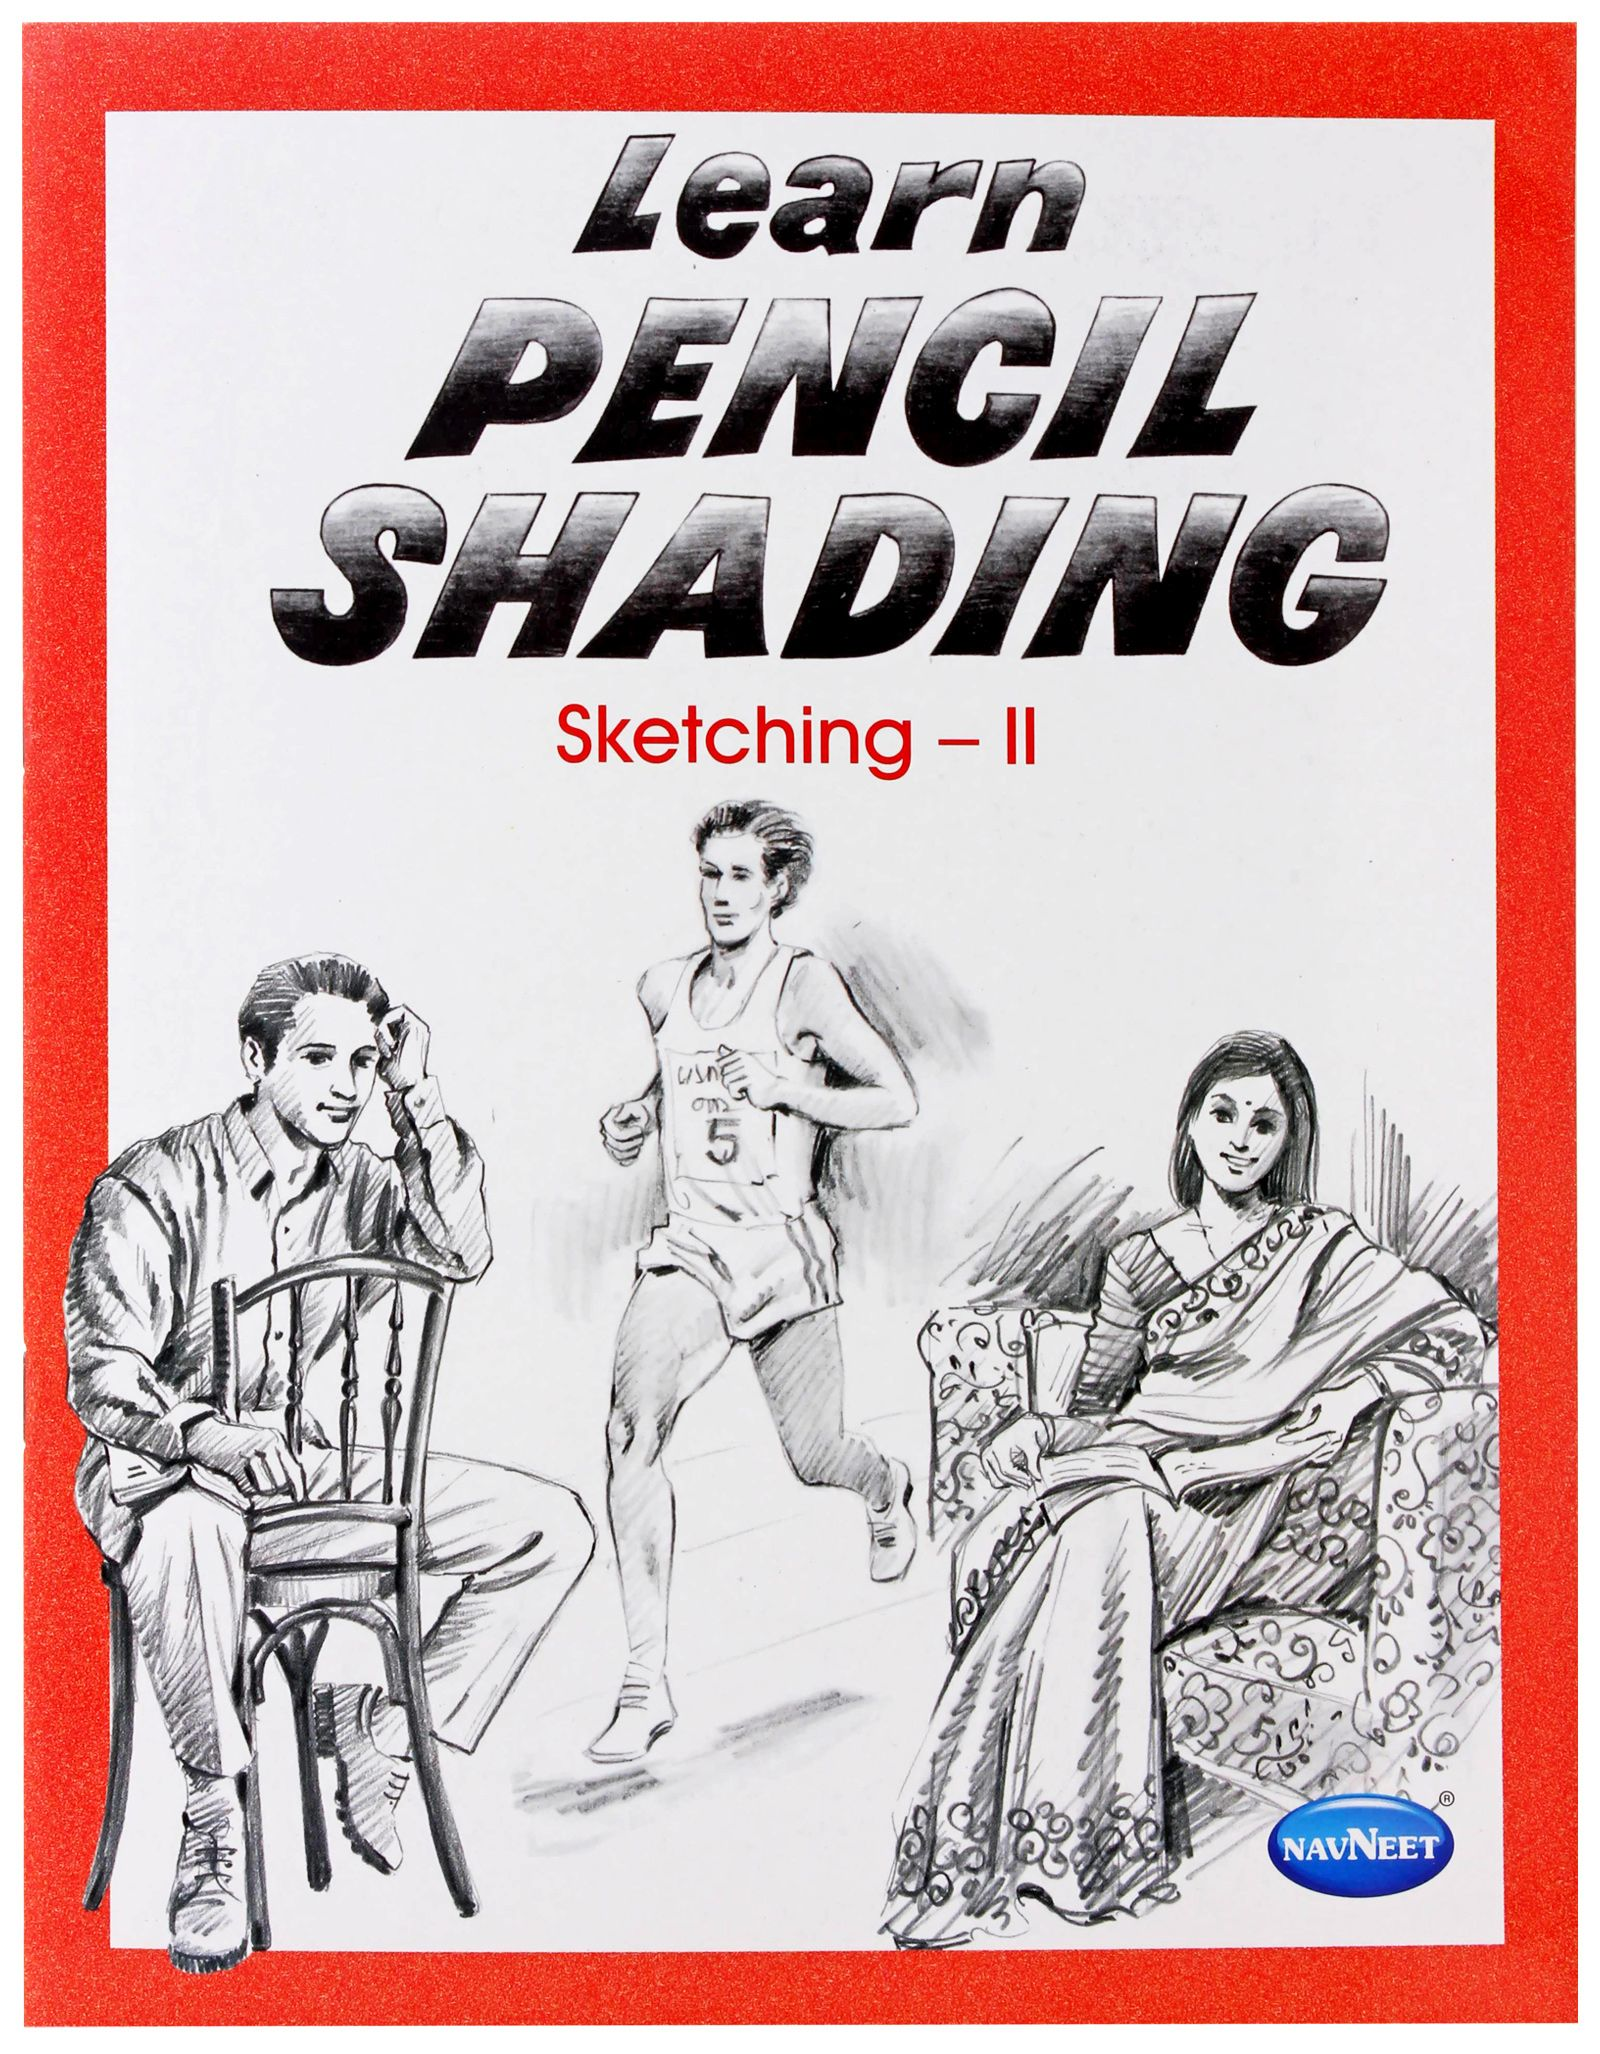 Learn pencil shading navneet pdf